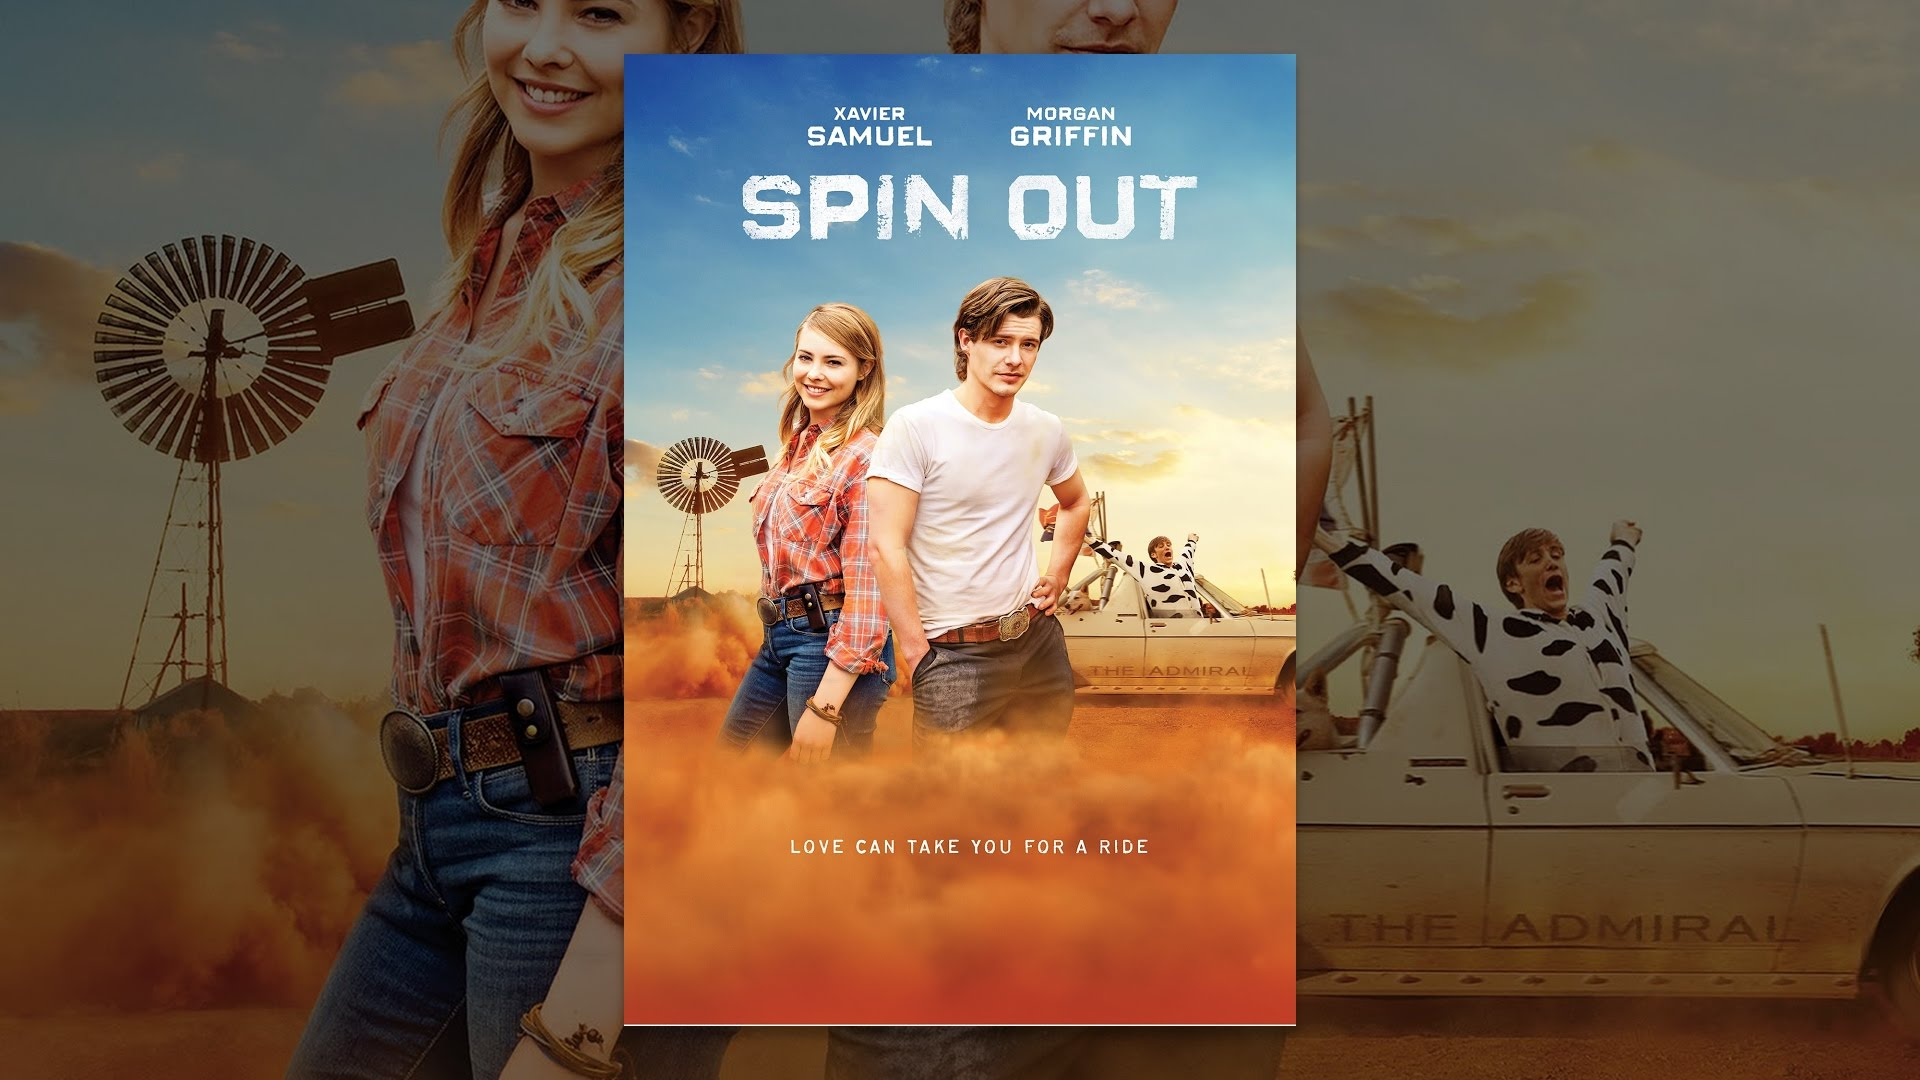 The movie spinout